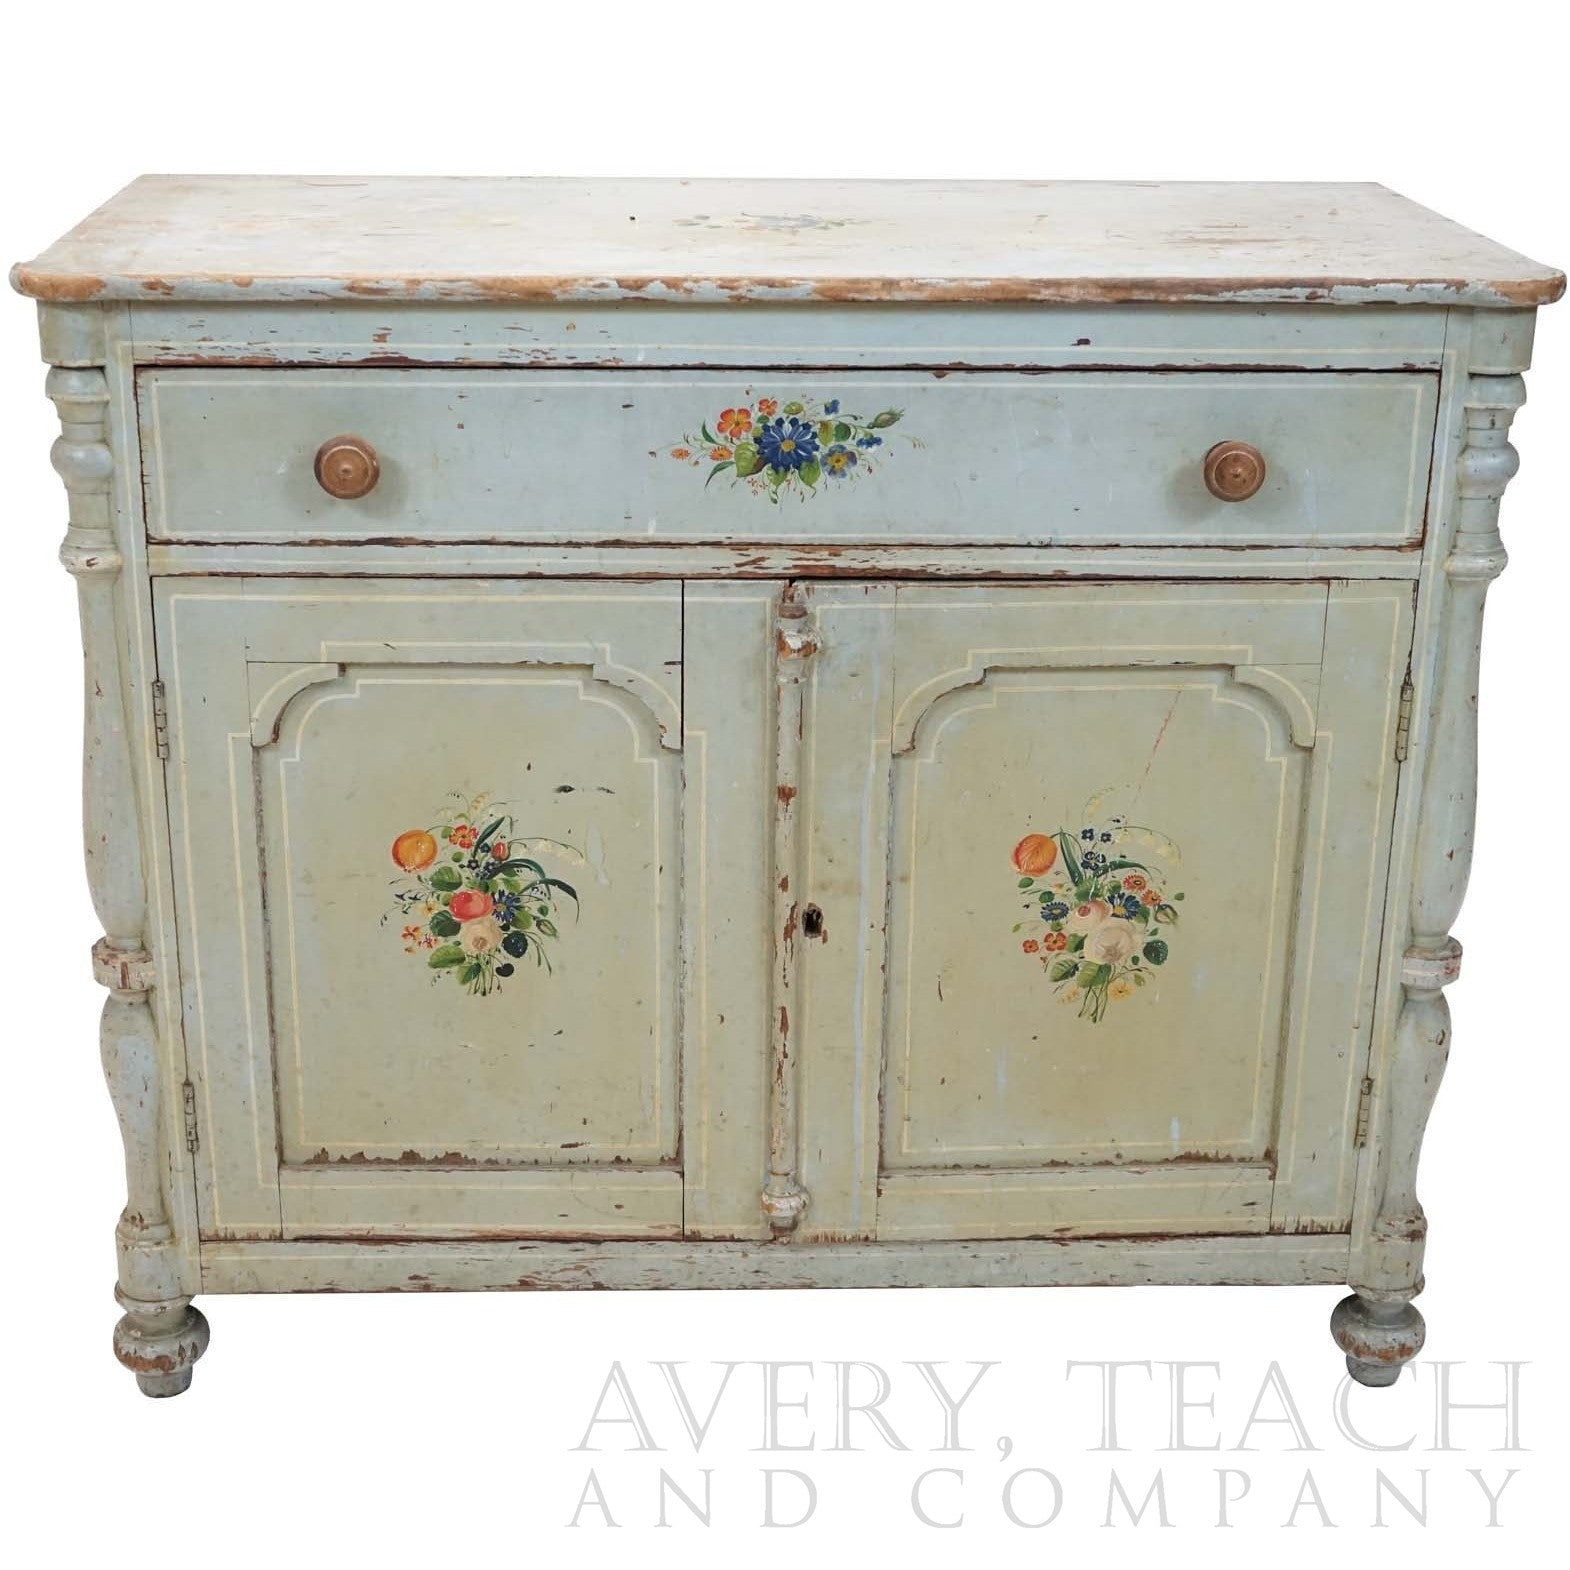 Early Antique Painted Wash Stand